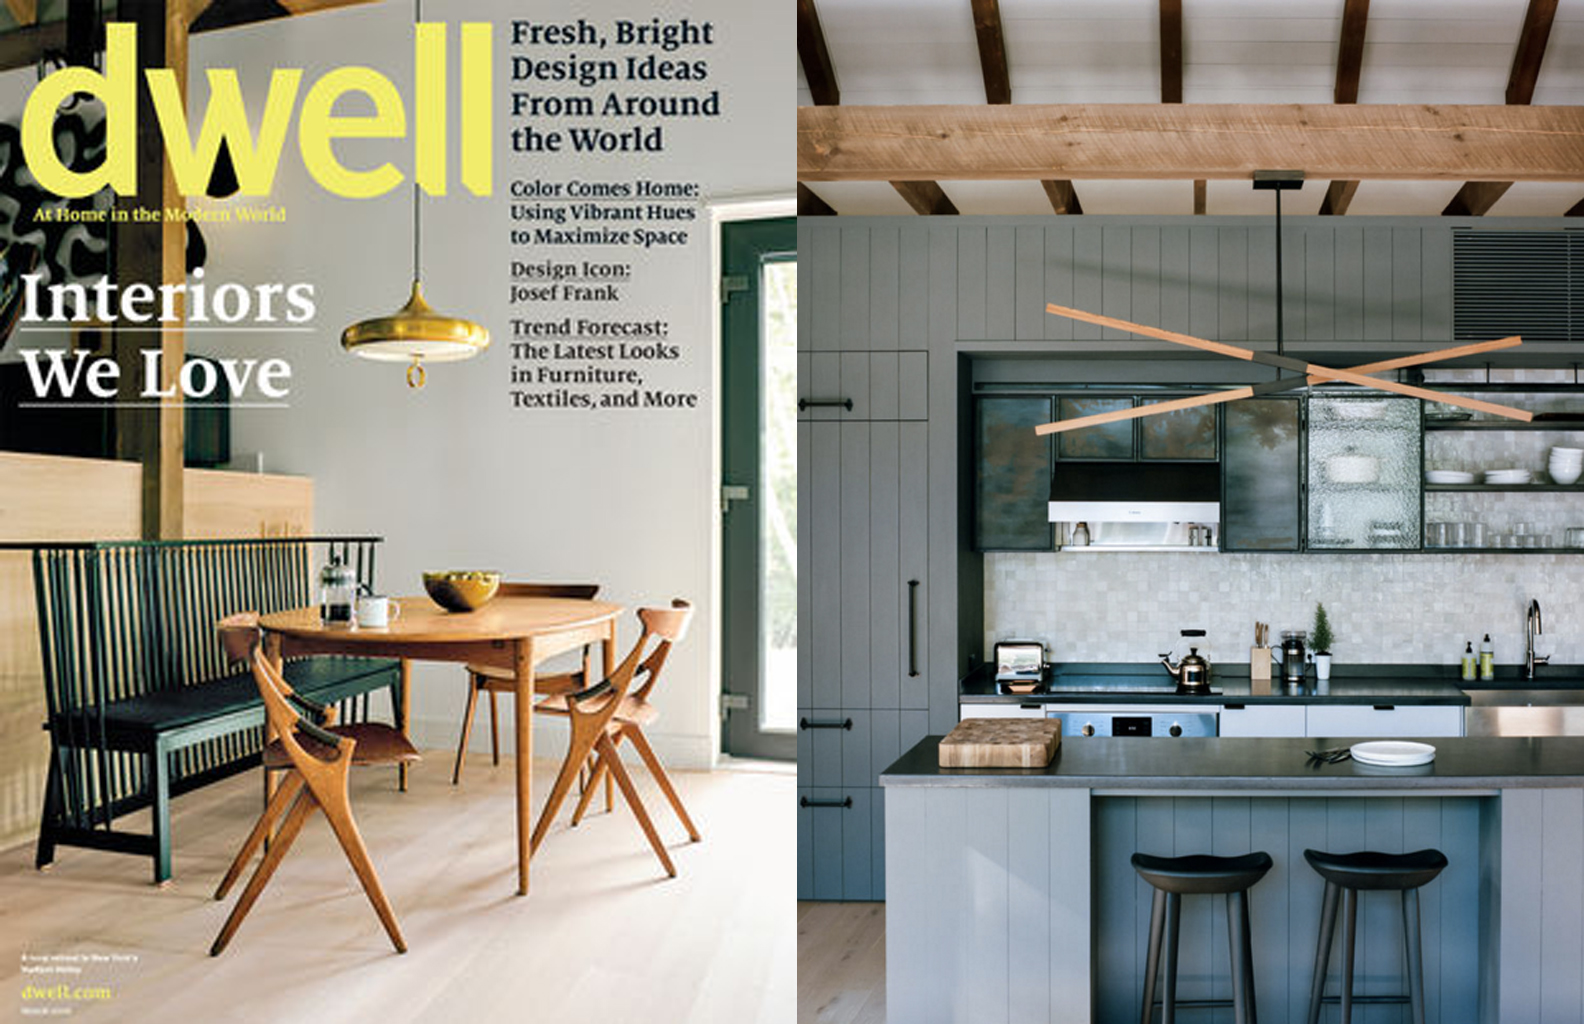 Stickbulb in Dwell